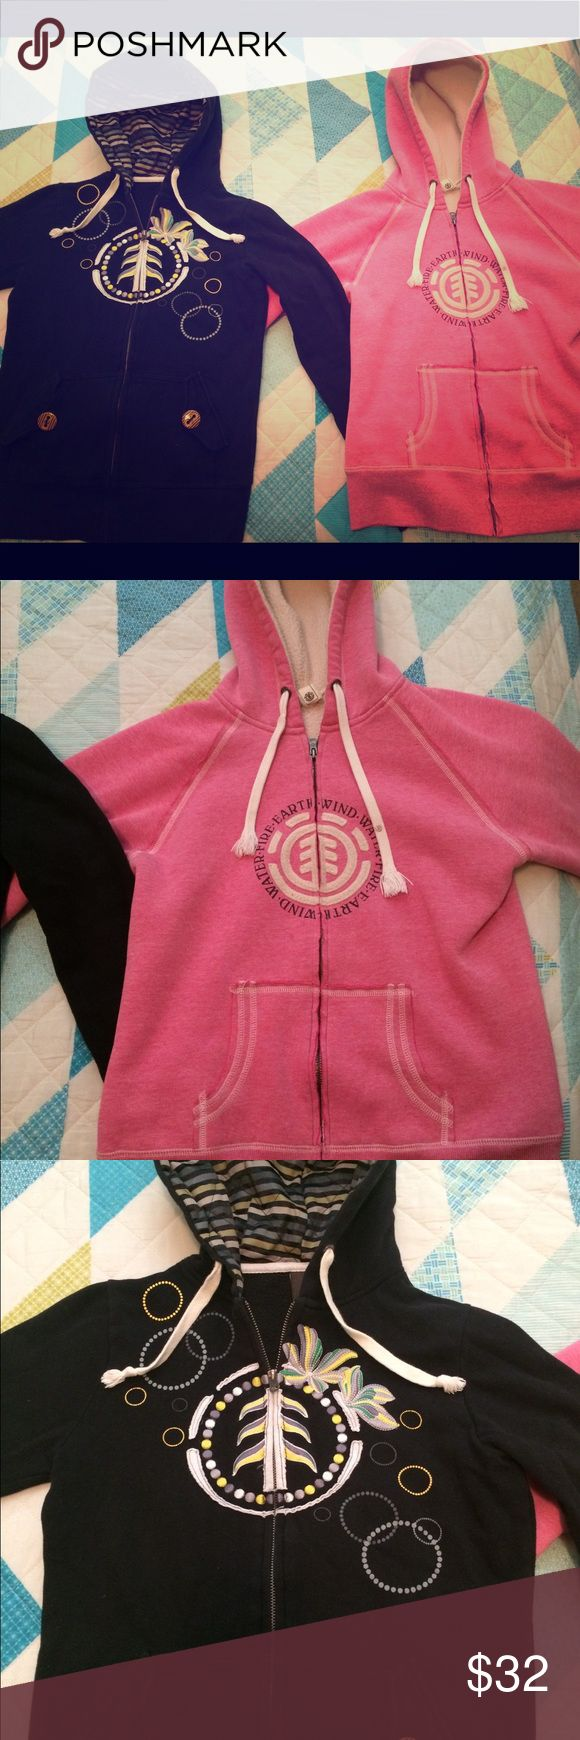 Element Hoodie Bundle 💘 Two women's Element hoodies. Both are like new. Bought off posh and never wore. The black one is a medium and the pink is a large. The pink hoodie is fleece lined and runs a bit small, fits like a medium. I am up for trades too!! Tops Sweatshirts & Hoodies